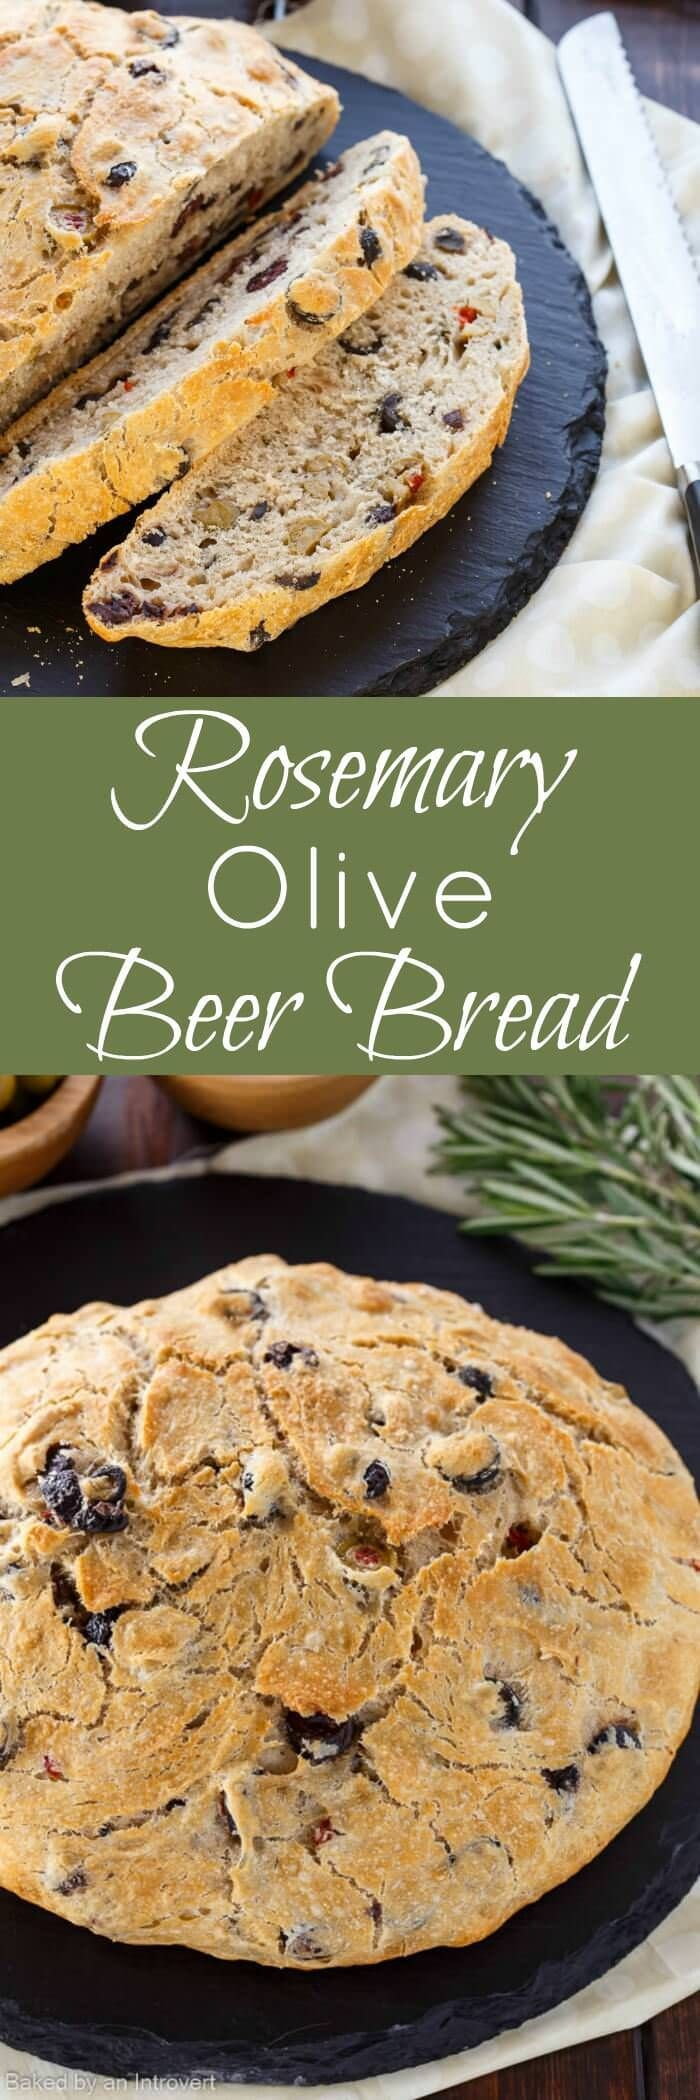 Enjoy this no-knead yeast bread recipe for Rosemary Olive Beer Bread. It's so flavorful, your entire family is sure to love this bread! via /introvertbaker/